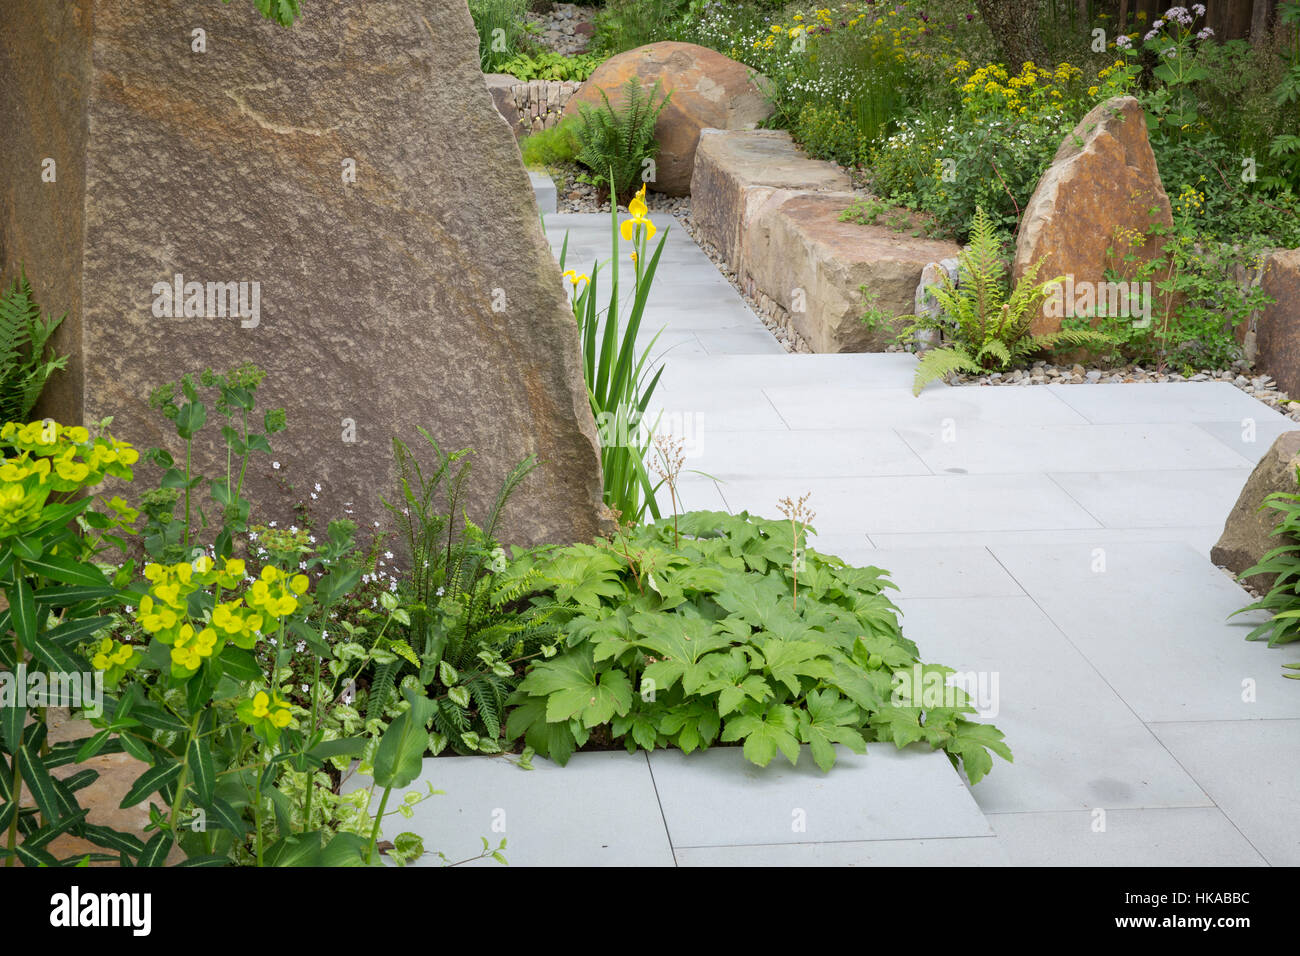 The M&G Garden, designed by Cleve West, Chelsea Flower Show, London 2016, UK - Stock Image